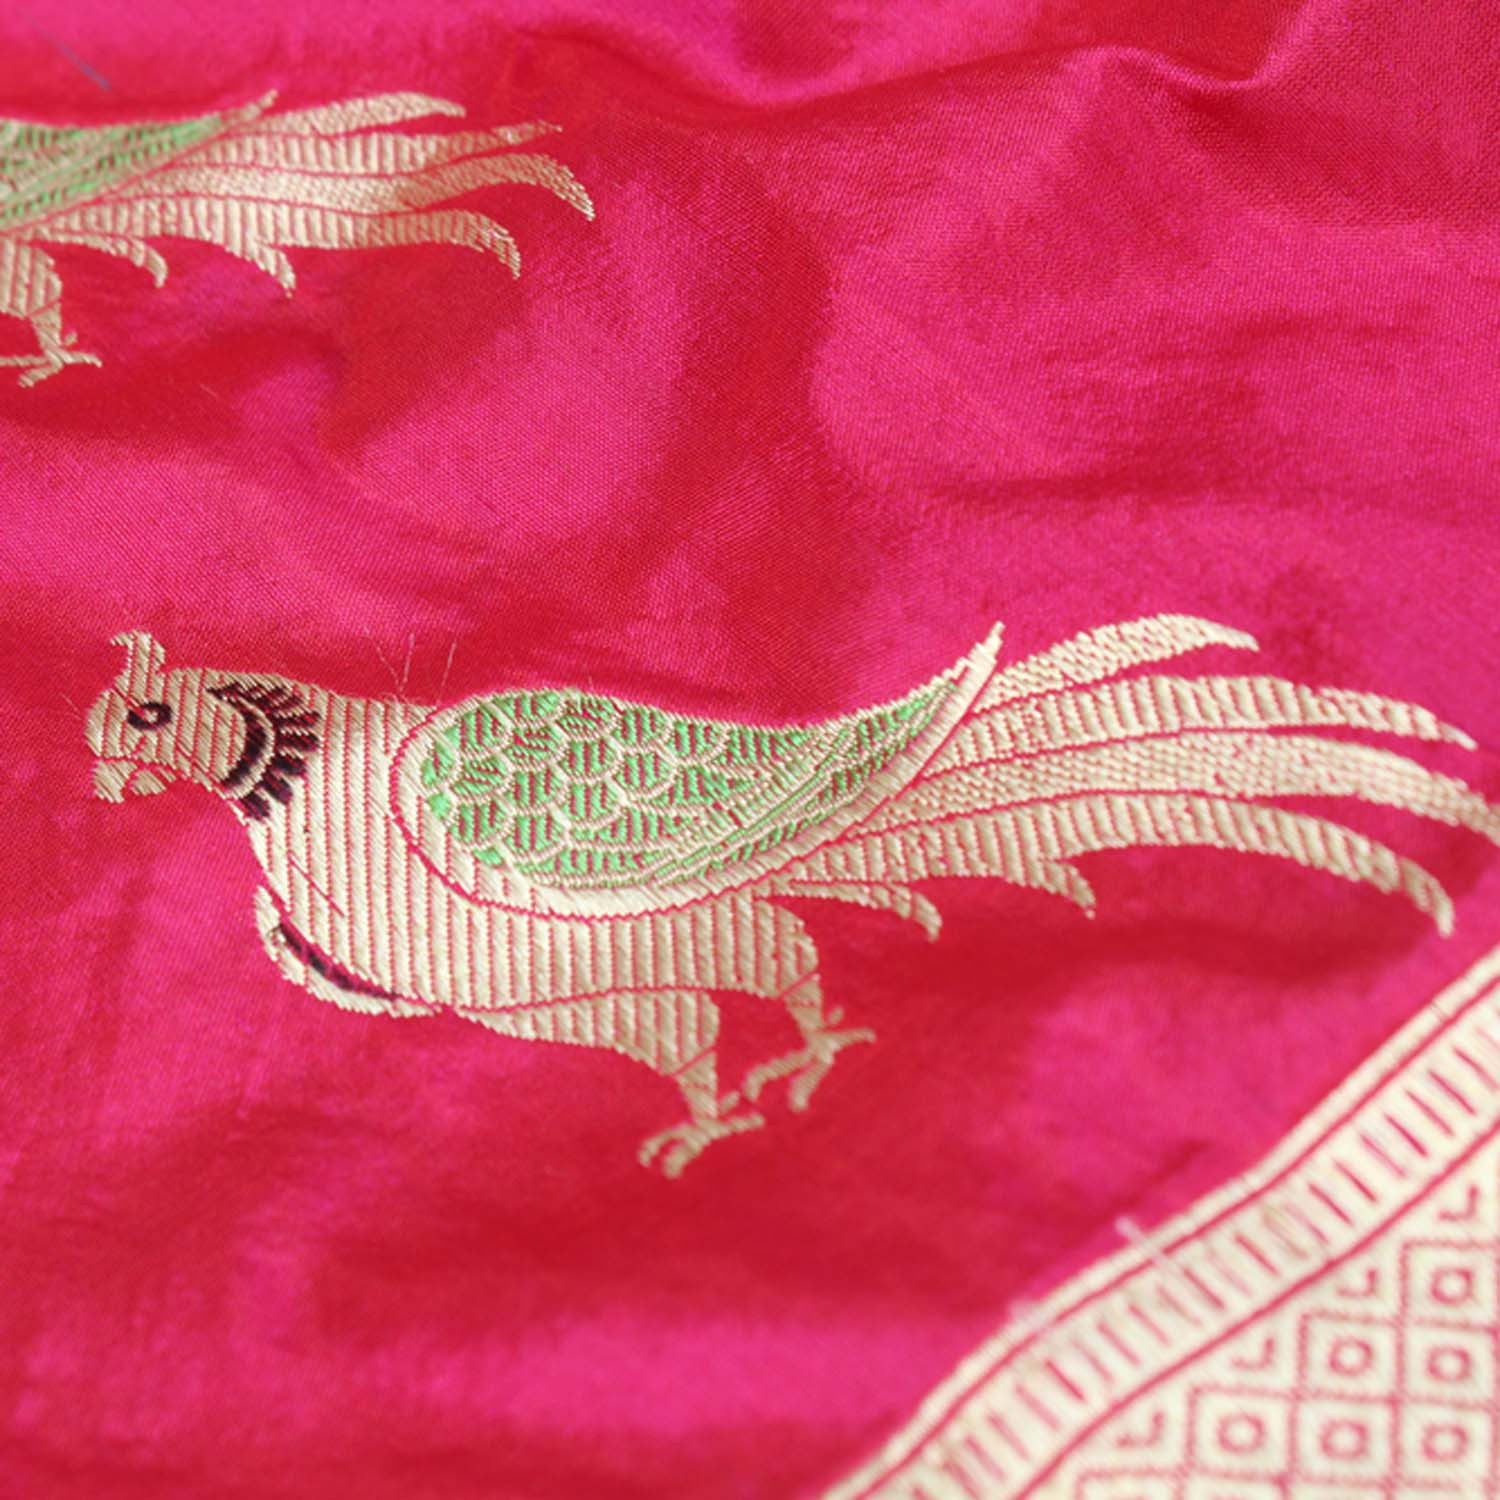 Red-Indian Pink Pure Katan Silk Banarasi Handloom Dupatta - Tilfi - 3